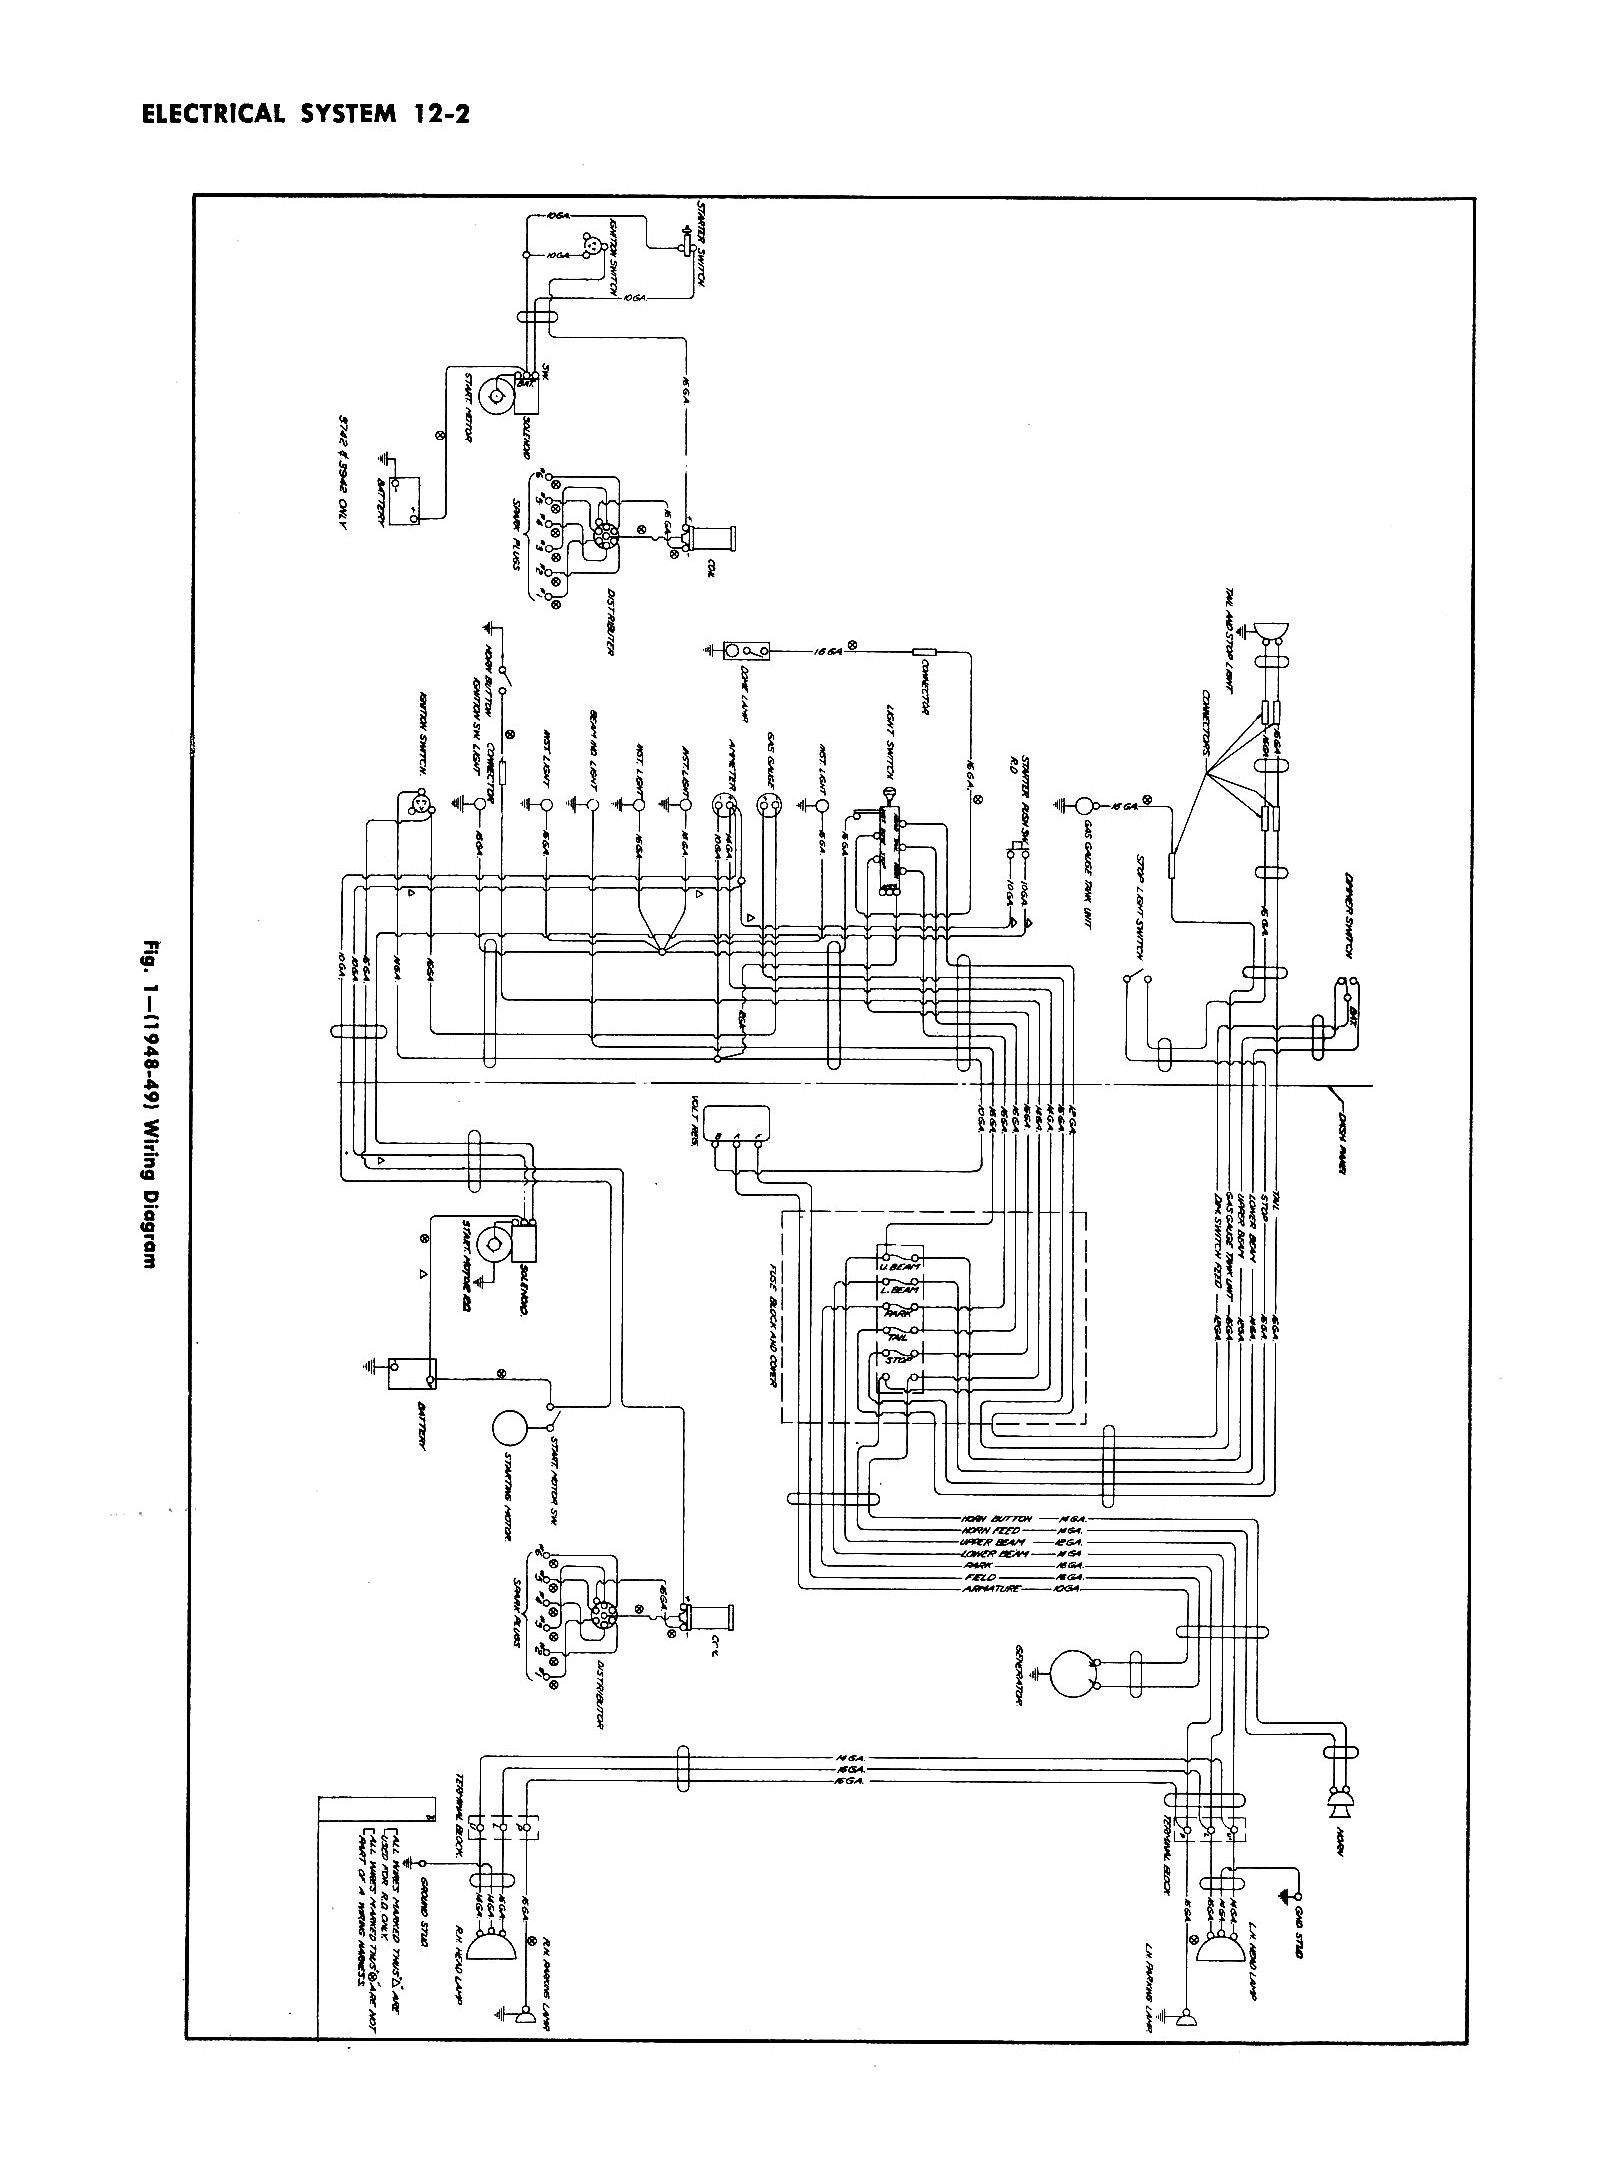 Chevy Wiring Diagrams 2000 Gmc Sierra Diagram P 1949 Truck